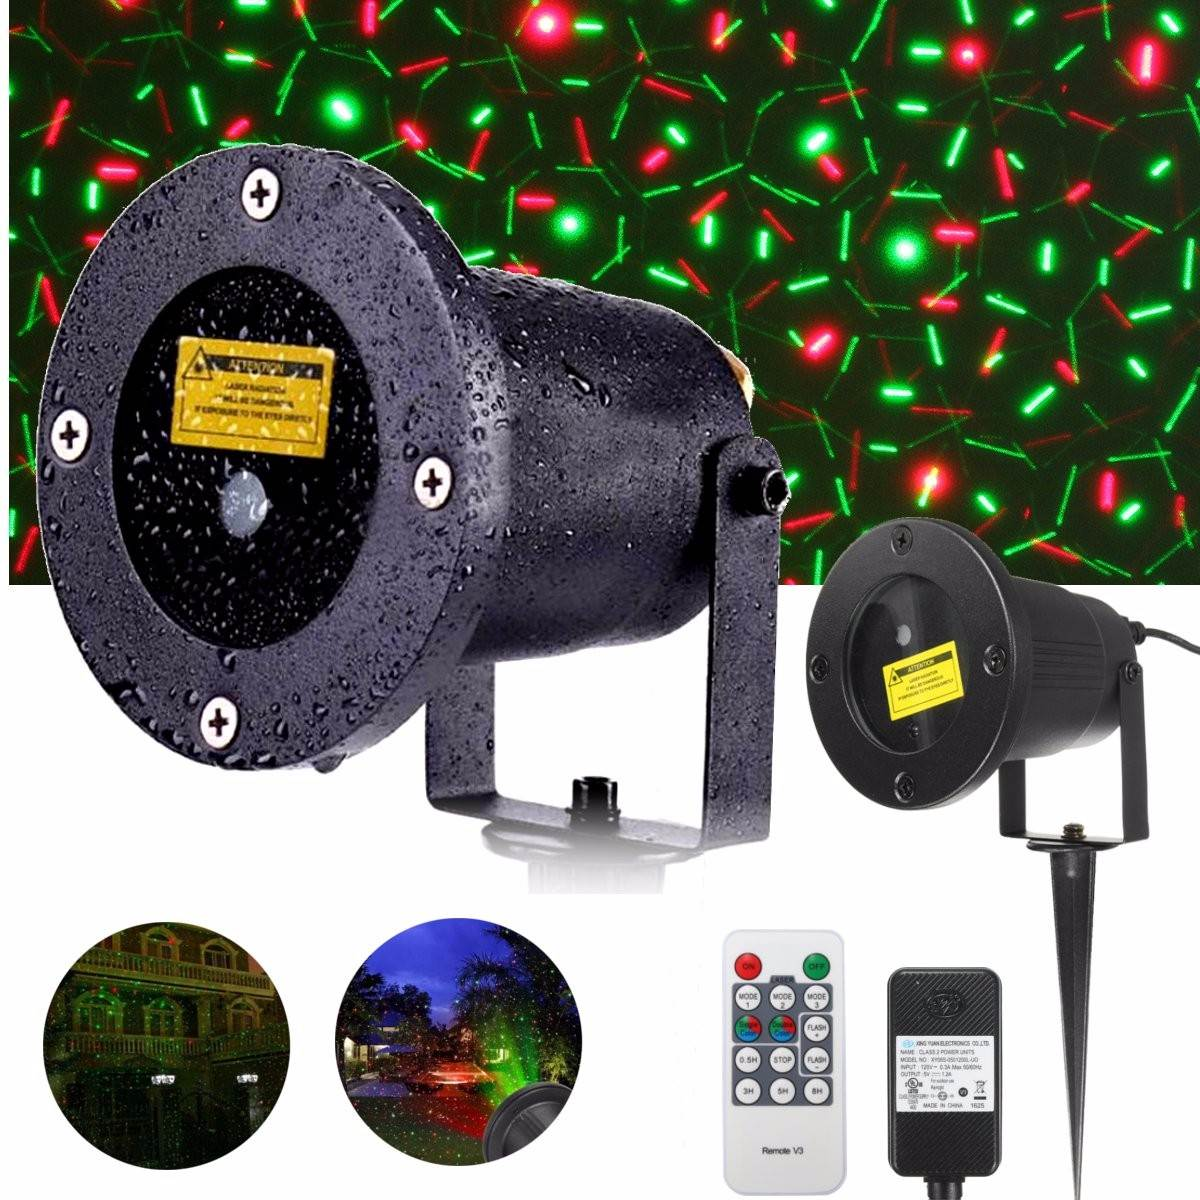 EU/US Plug 110-240V Waterproof Outdoor Landscape Garden Projector Decoration Moving Laser Christmas Stage Light free shipping us plug outdoor ip65 waterproof stage light christmas lights xmas light projector christmas uk us eu plug xx